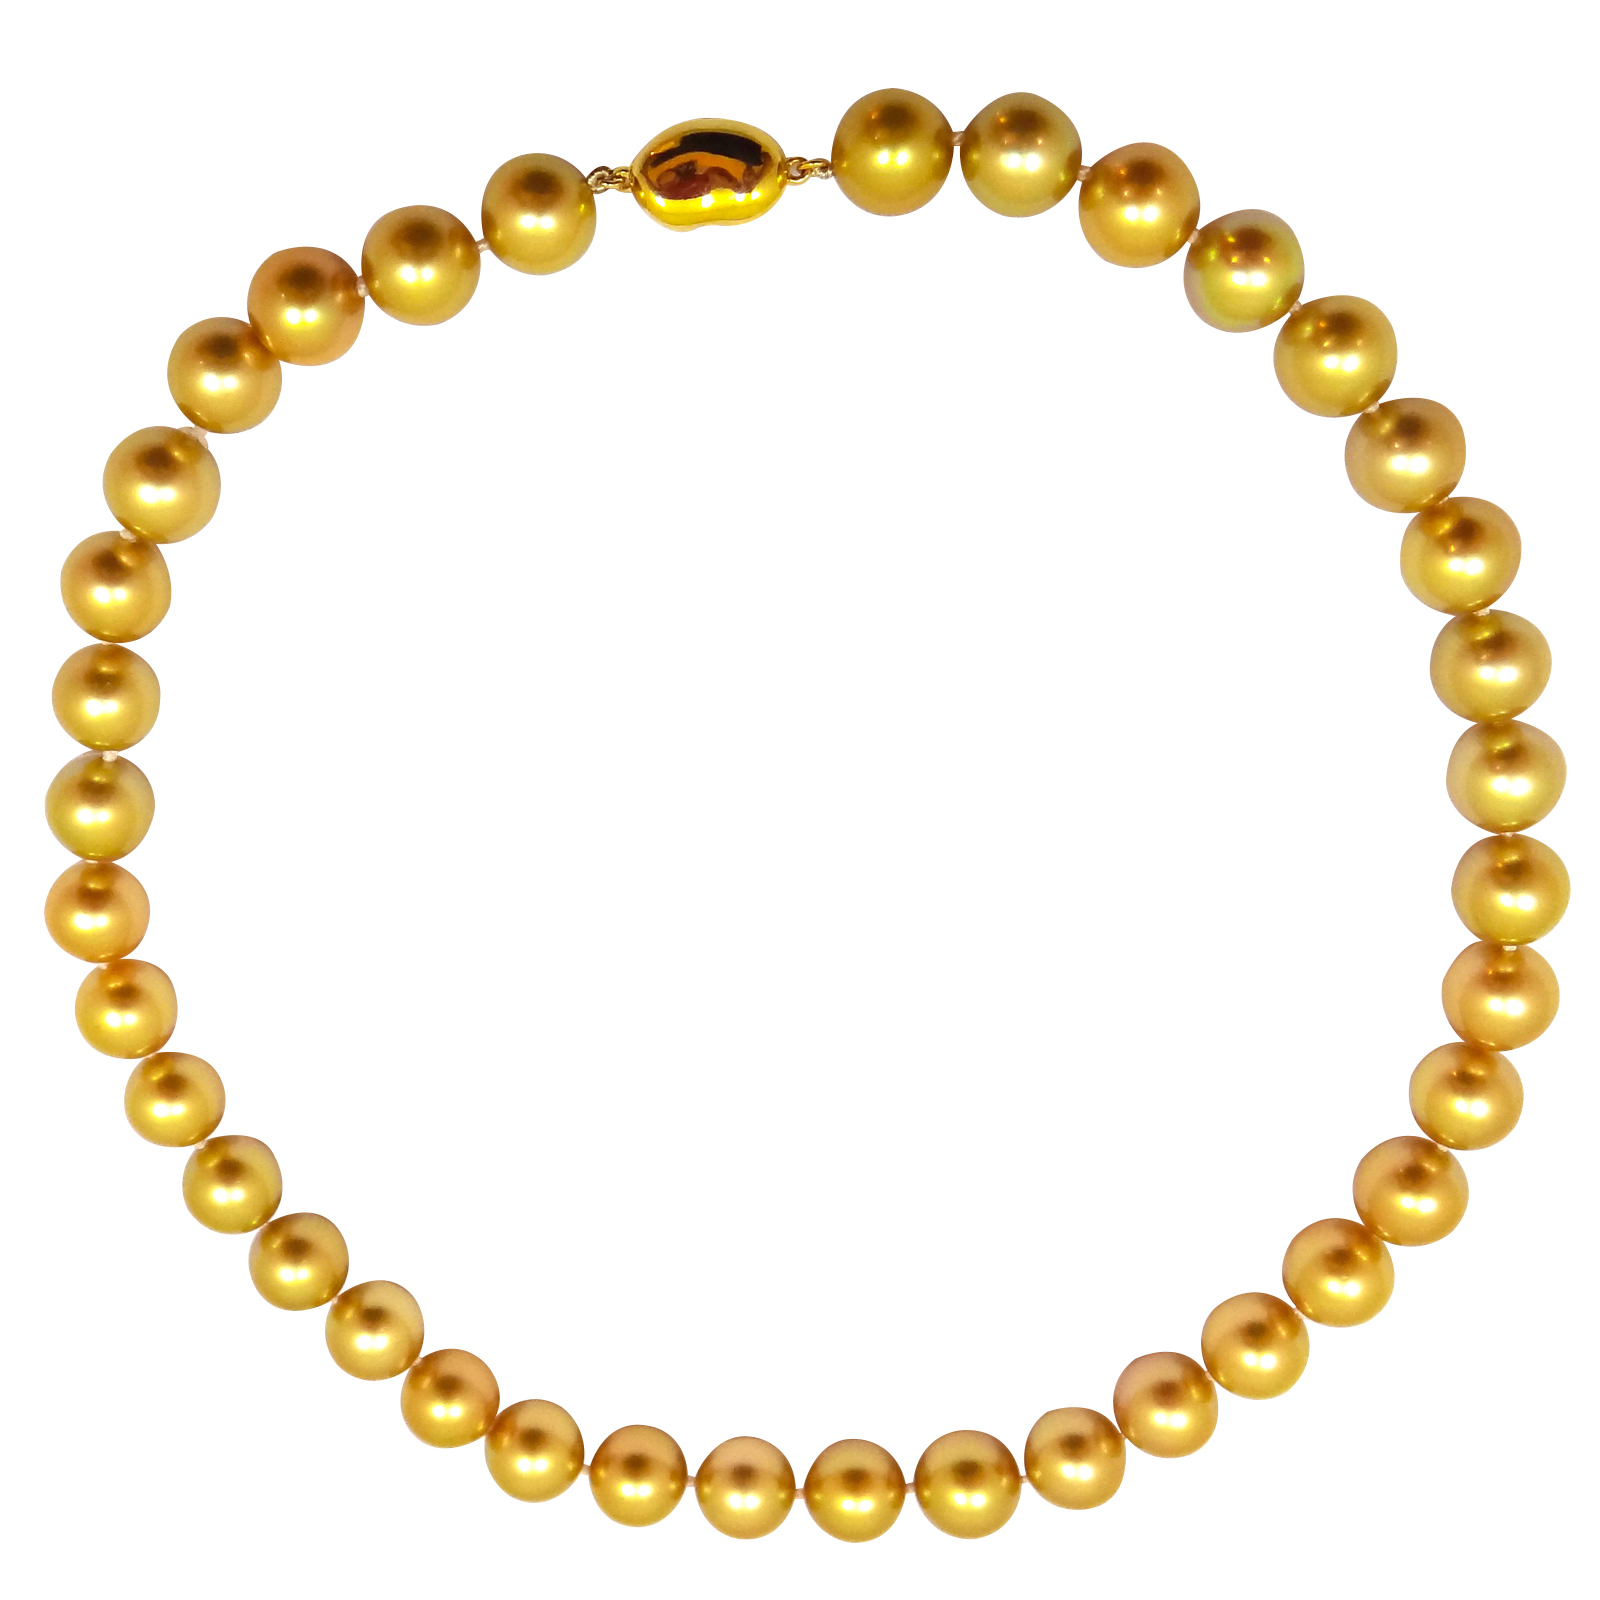 SOUTH SEA GOLDEN PEARL STRAND NECKLACE BESPOKE FINE JEWELLERY BY SHAHINA HATTA